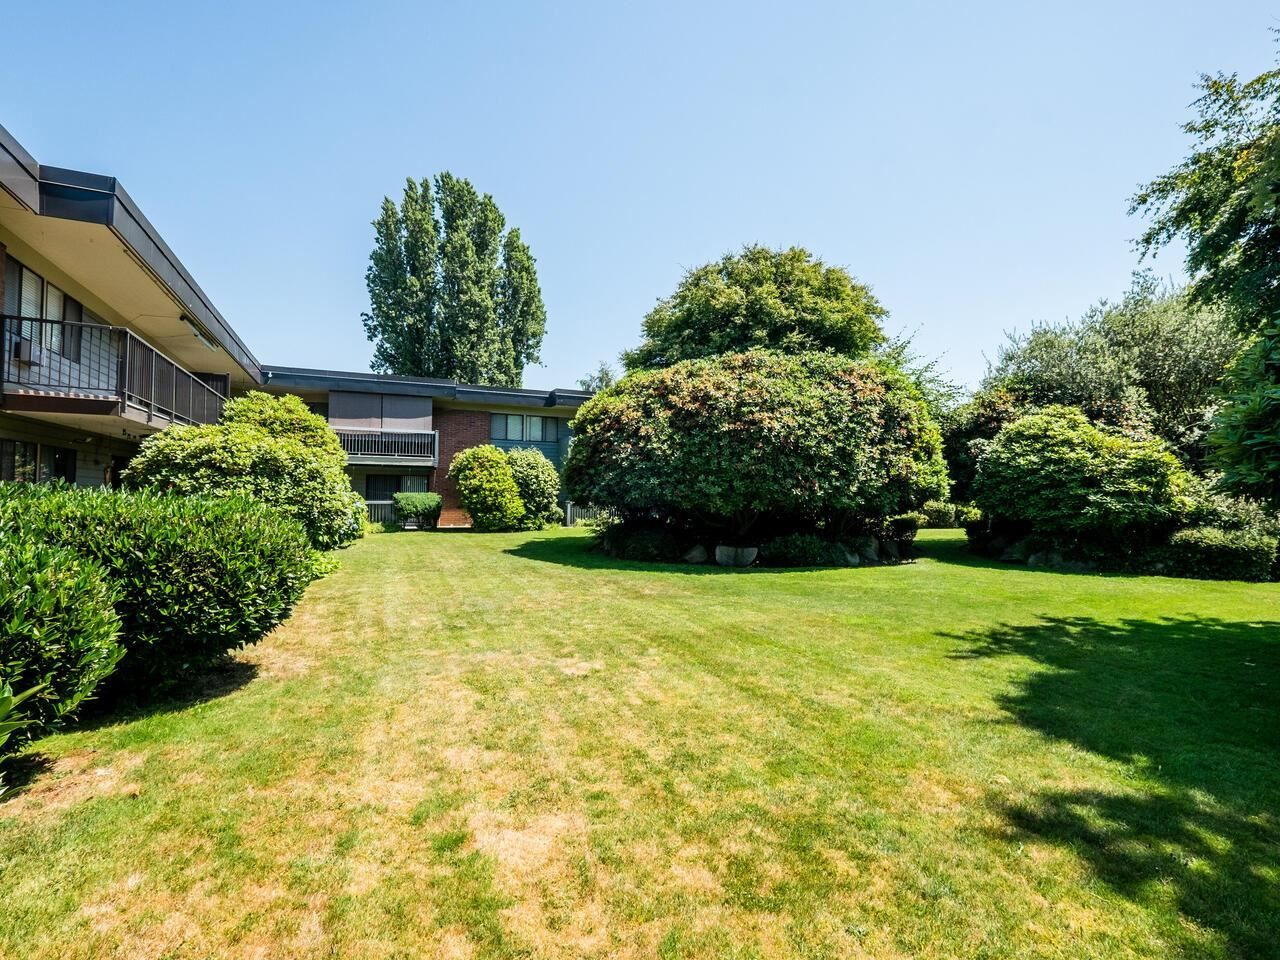 """Photo 24: Photos: 209 2600 E 49TH Avenue in Vancouver: Killarney VE Condo for sale in """"Southwinds"""" (Vancouver East)  : MLS®# R2600173"""